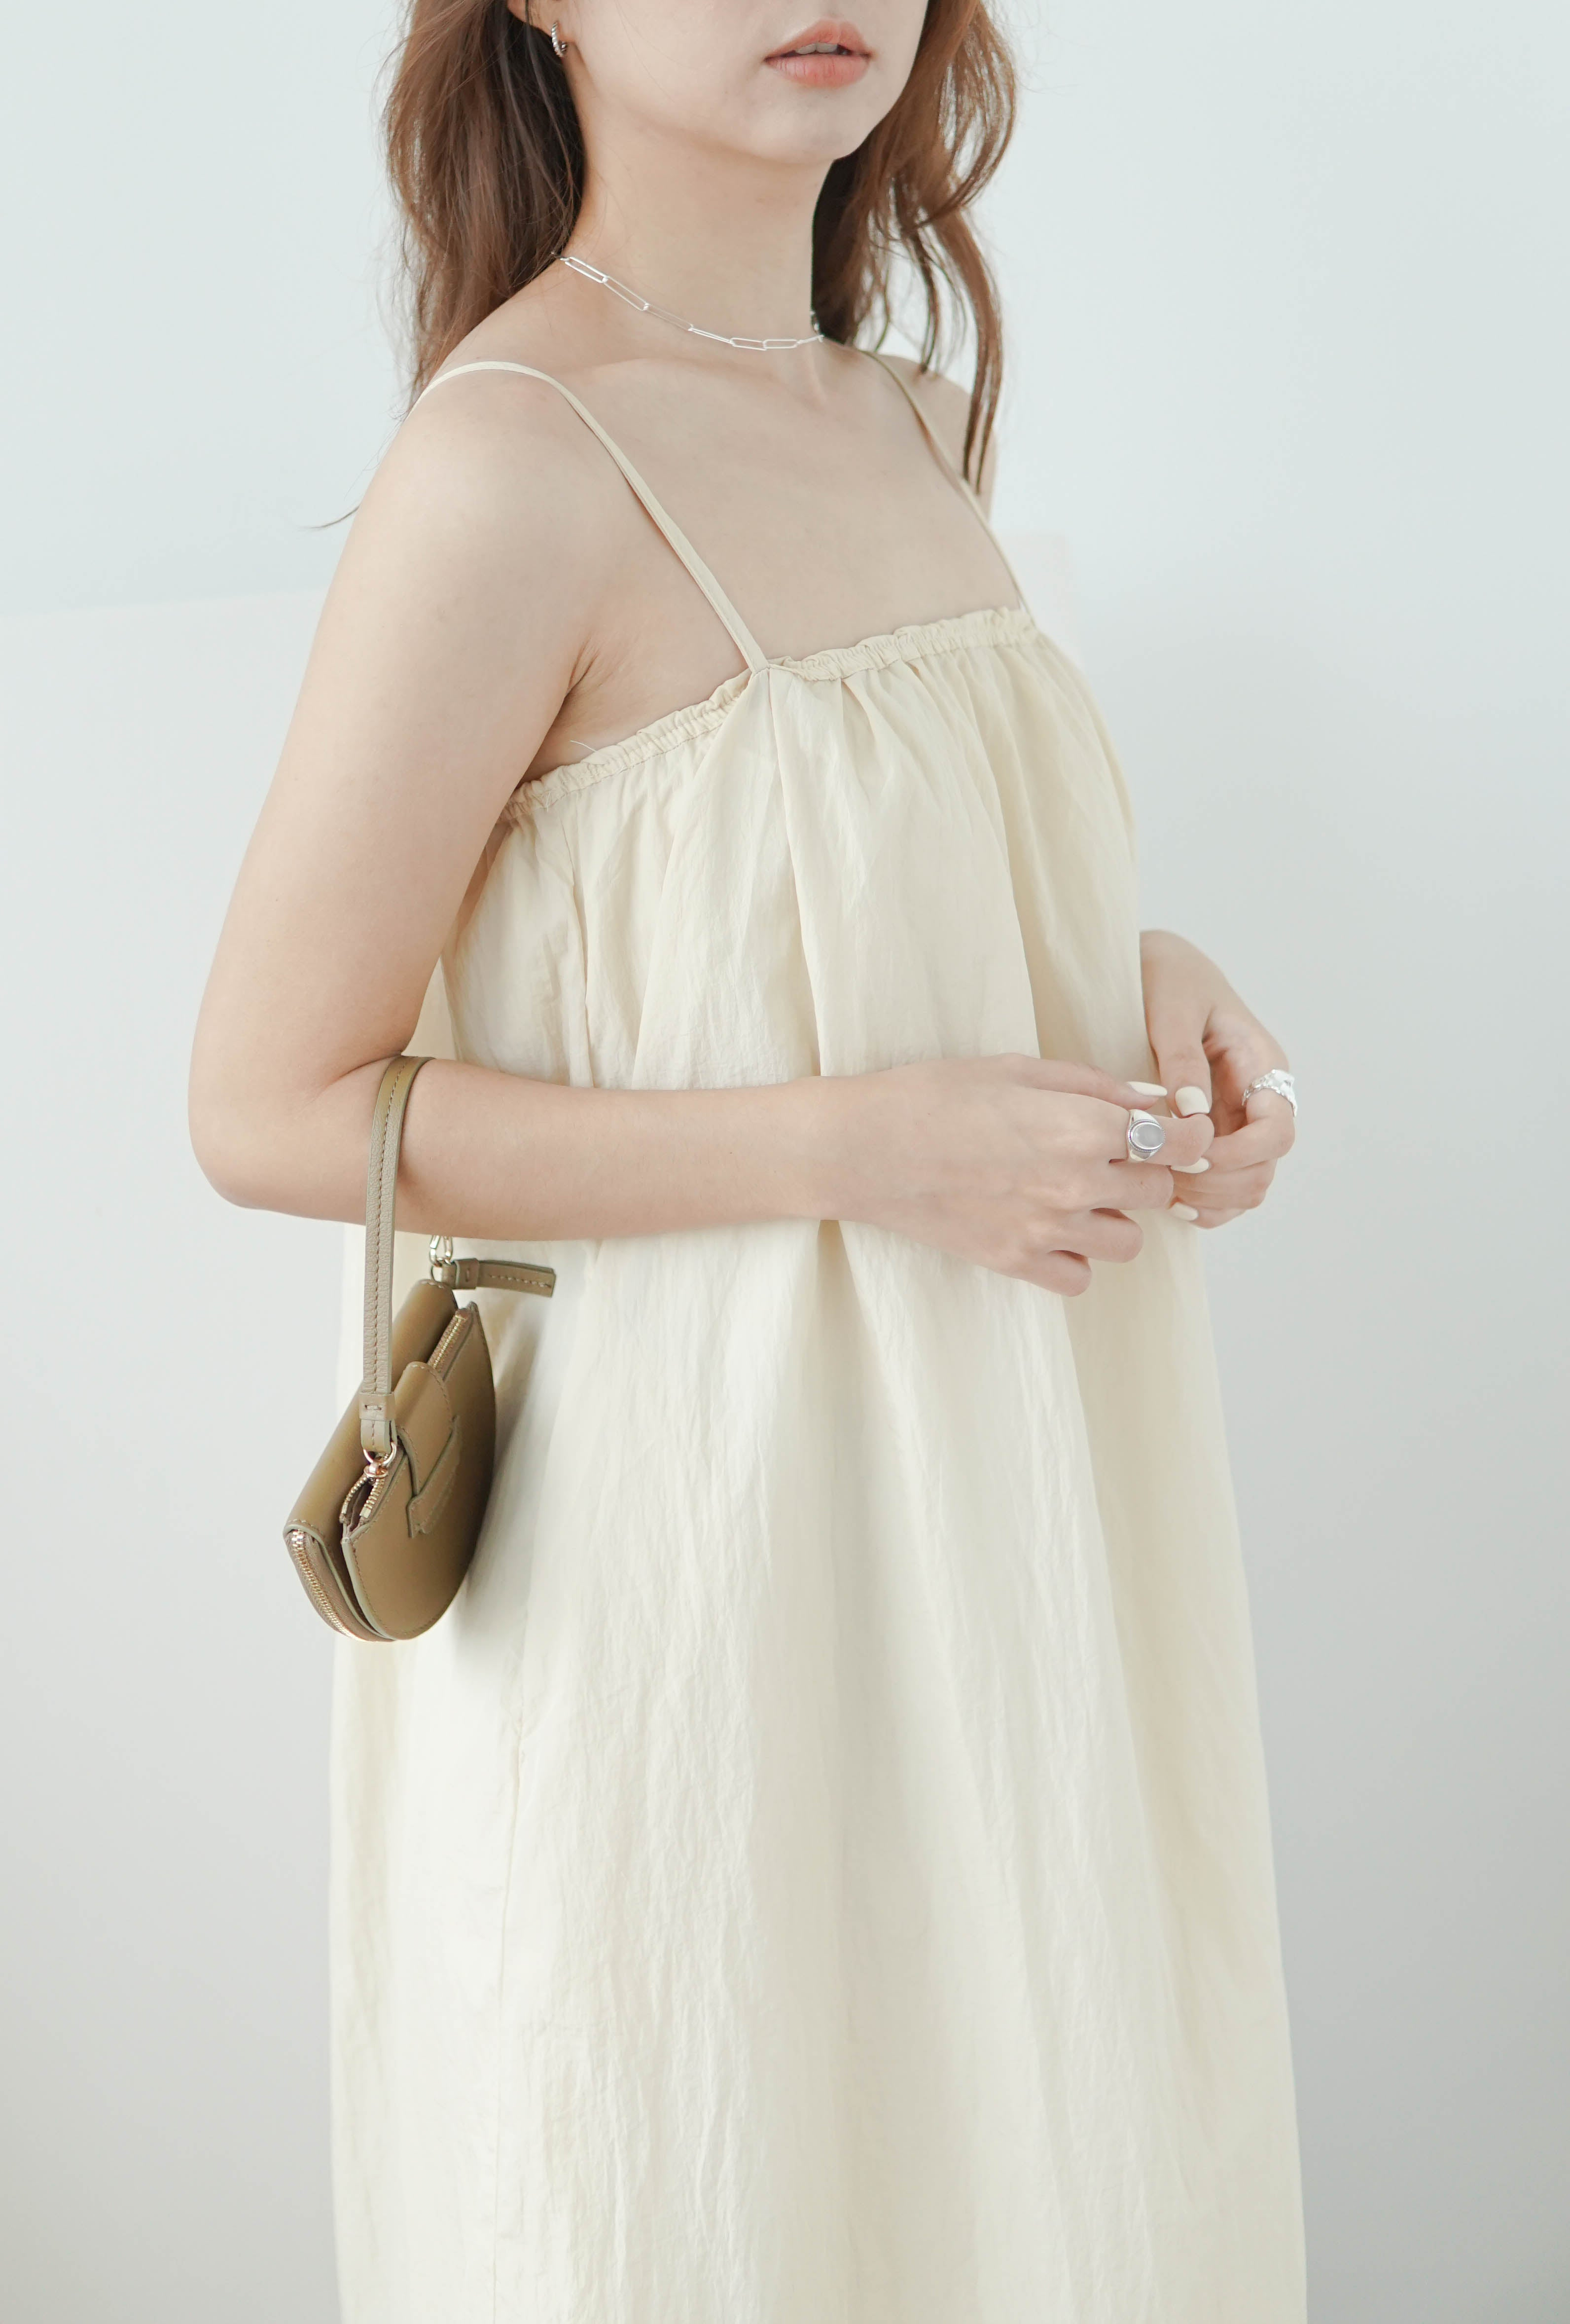 High waist mid-length camisole dress in almond color